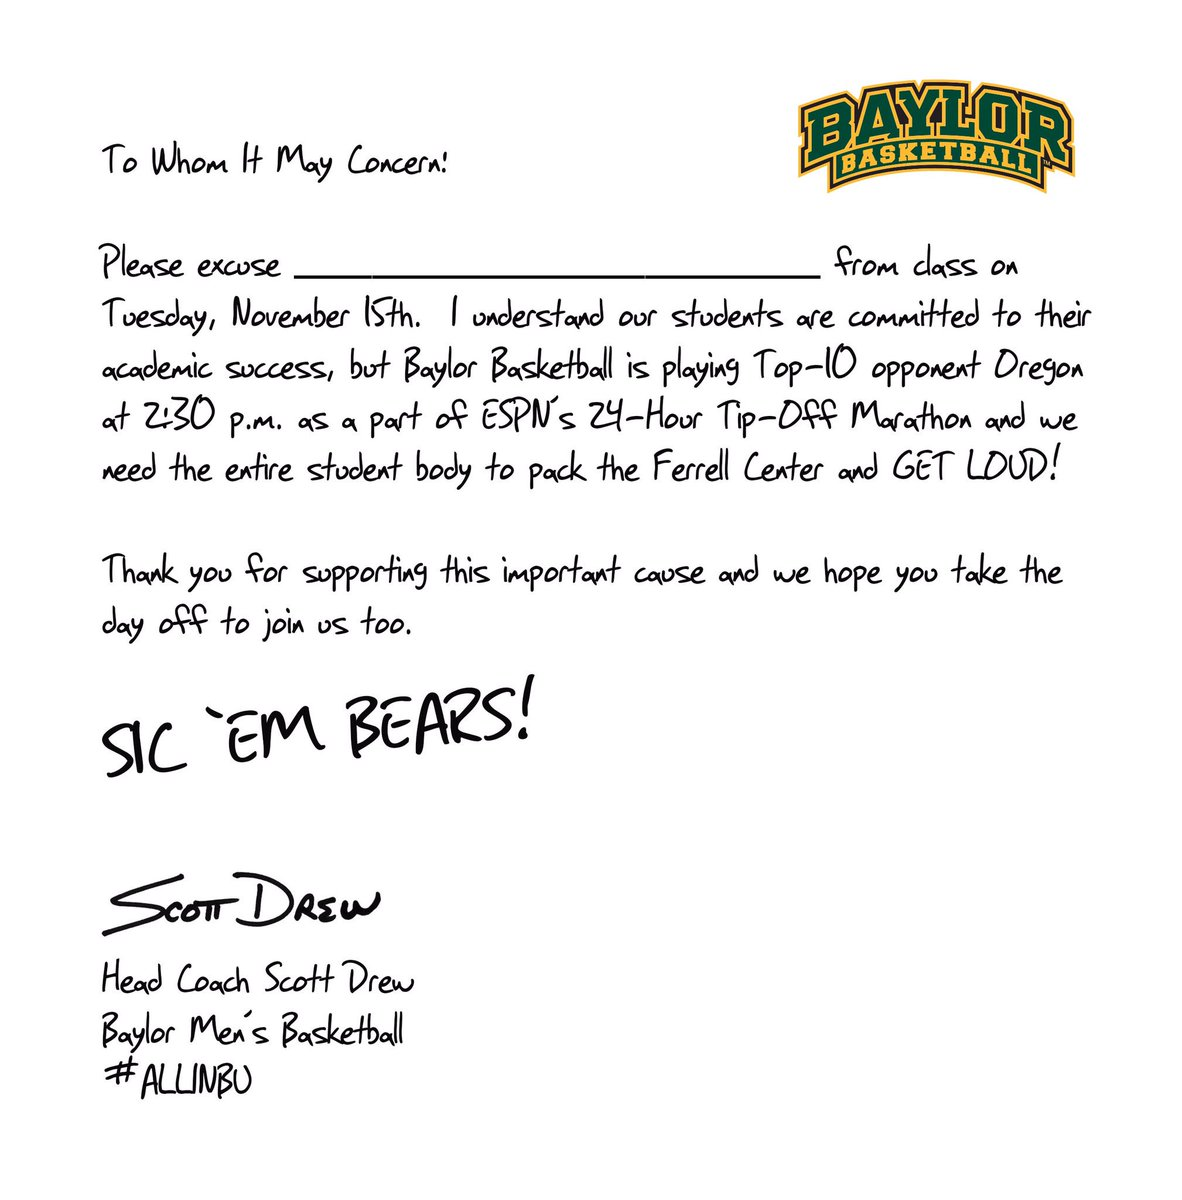 I've got your back, Baylor students!!   Can't wait to see you at Ferrell Center at 2:30 pm Tuesday!   #SicOregon